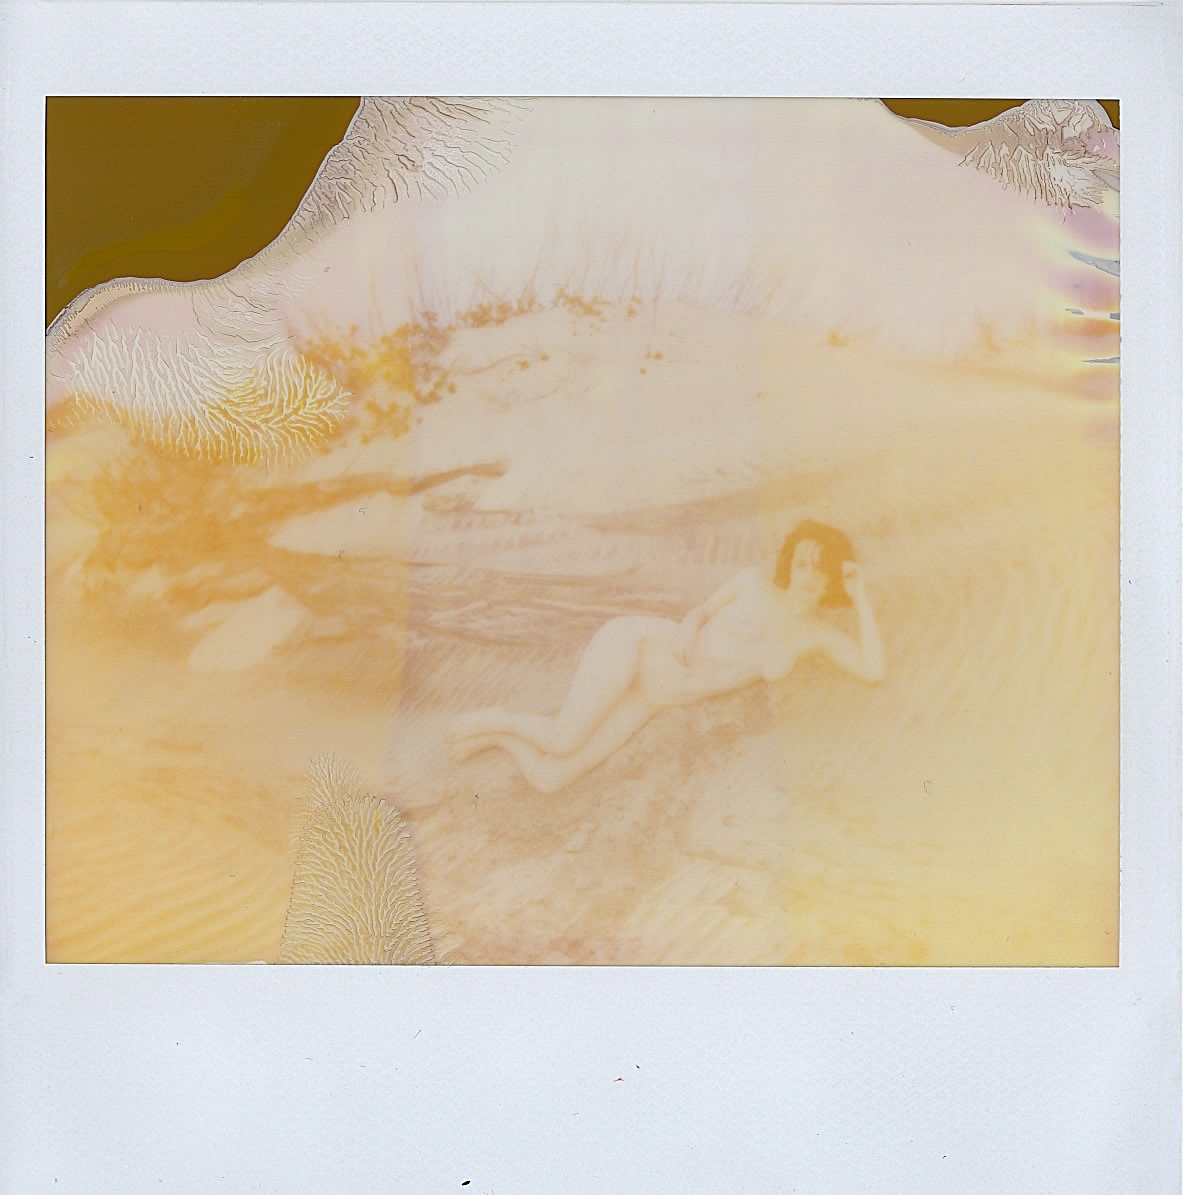 Self; taken by Presley on my Polaroid Spectra with expired film -- January 2017 -- Outer Banks, N.C.